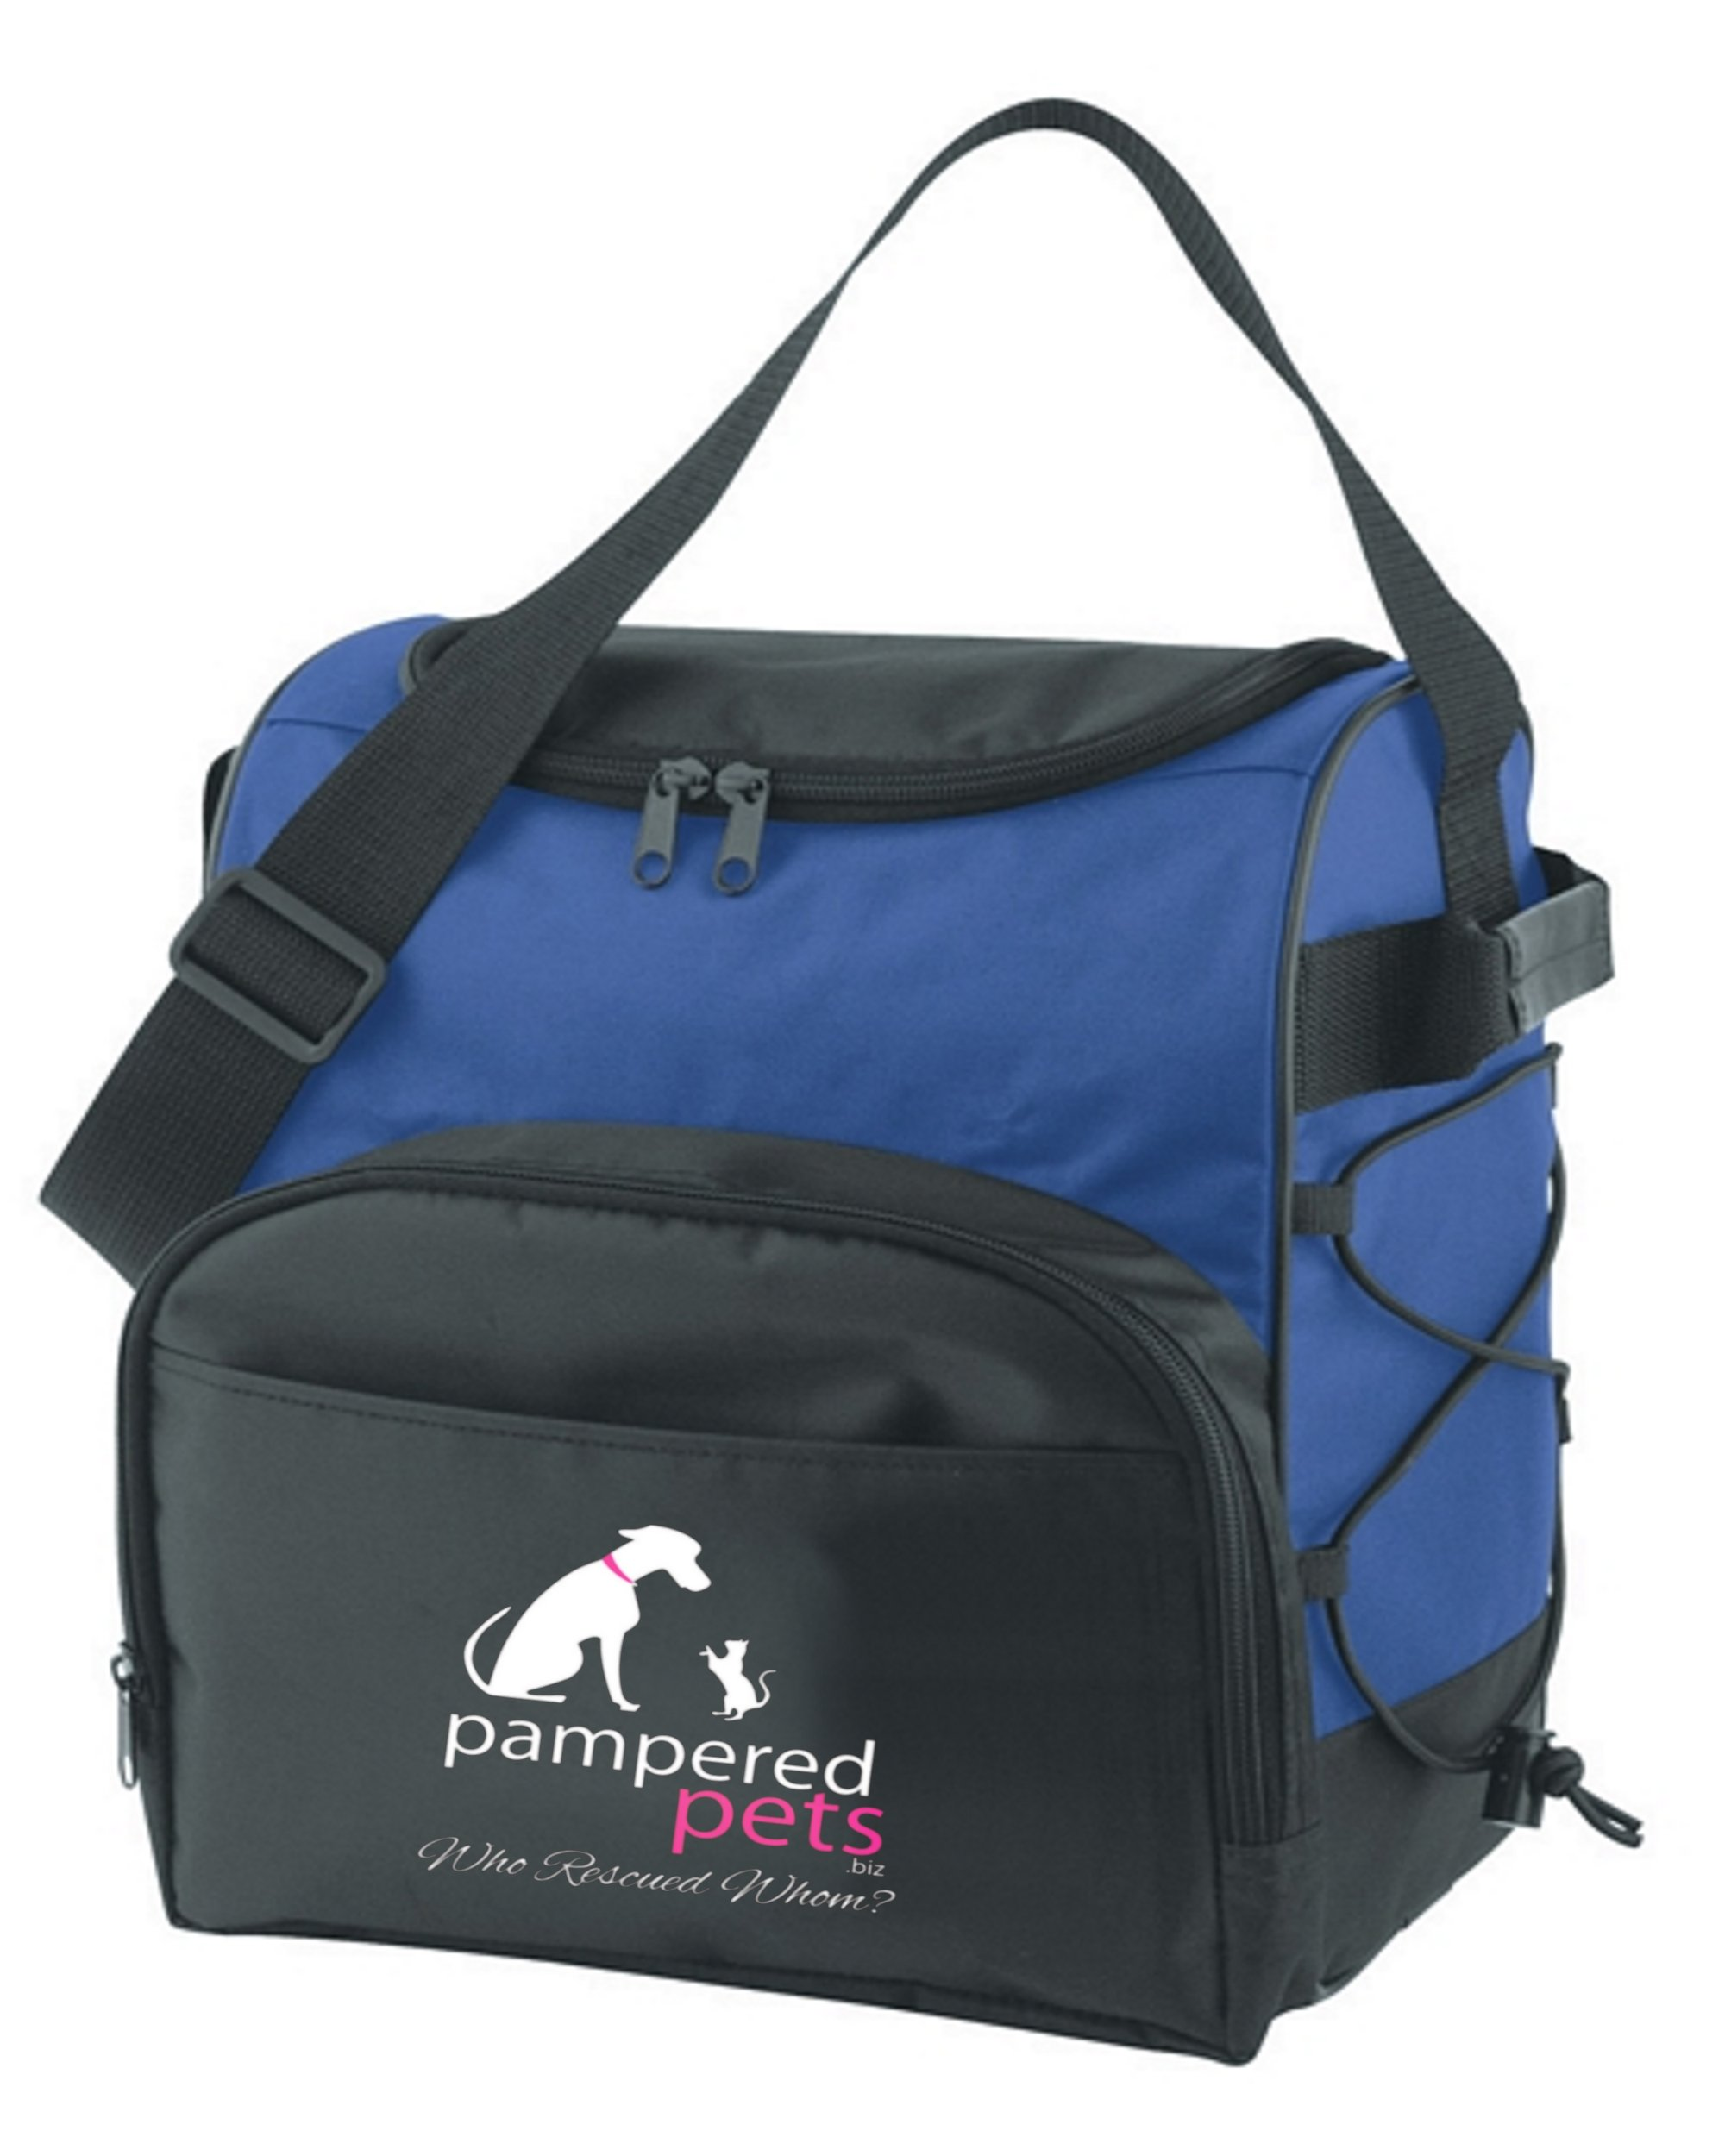 Pampered Pets Pampered Pets 12 Can Dual Zippered Travel Cooler ''Who Rescued Whom'' Royal Blue by Pampered Pets